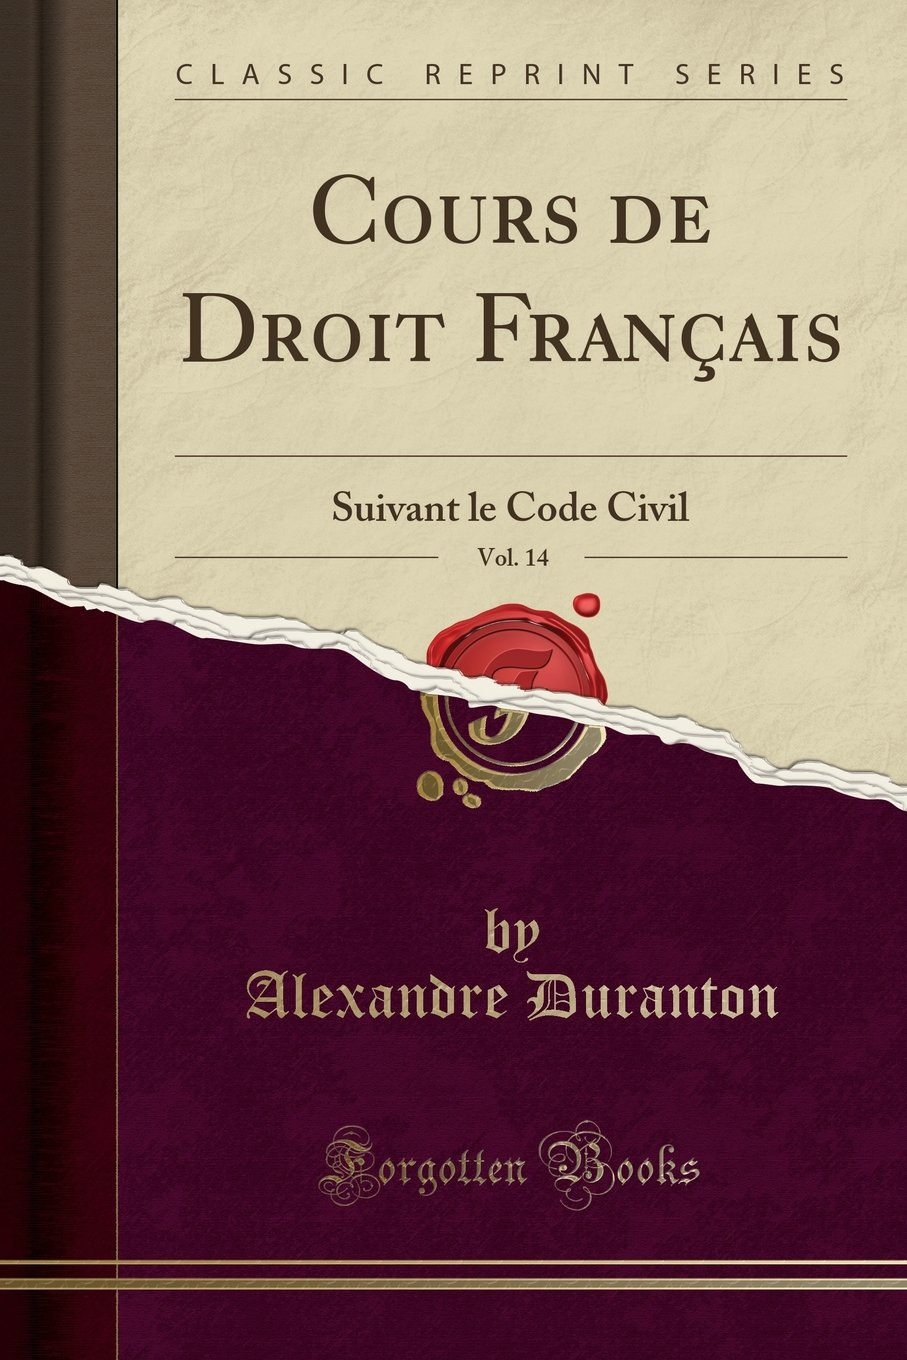 Cours de Droit Français, Vol. 14: Suivant le Code Civil (Classic Reprint) (French Edition) ebook